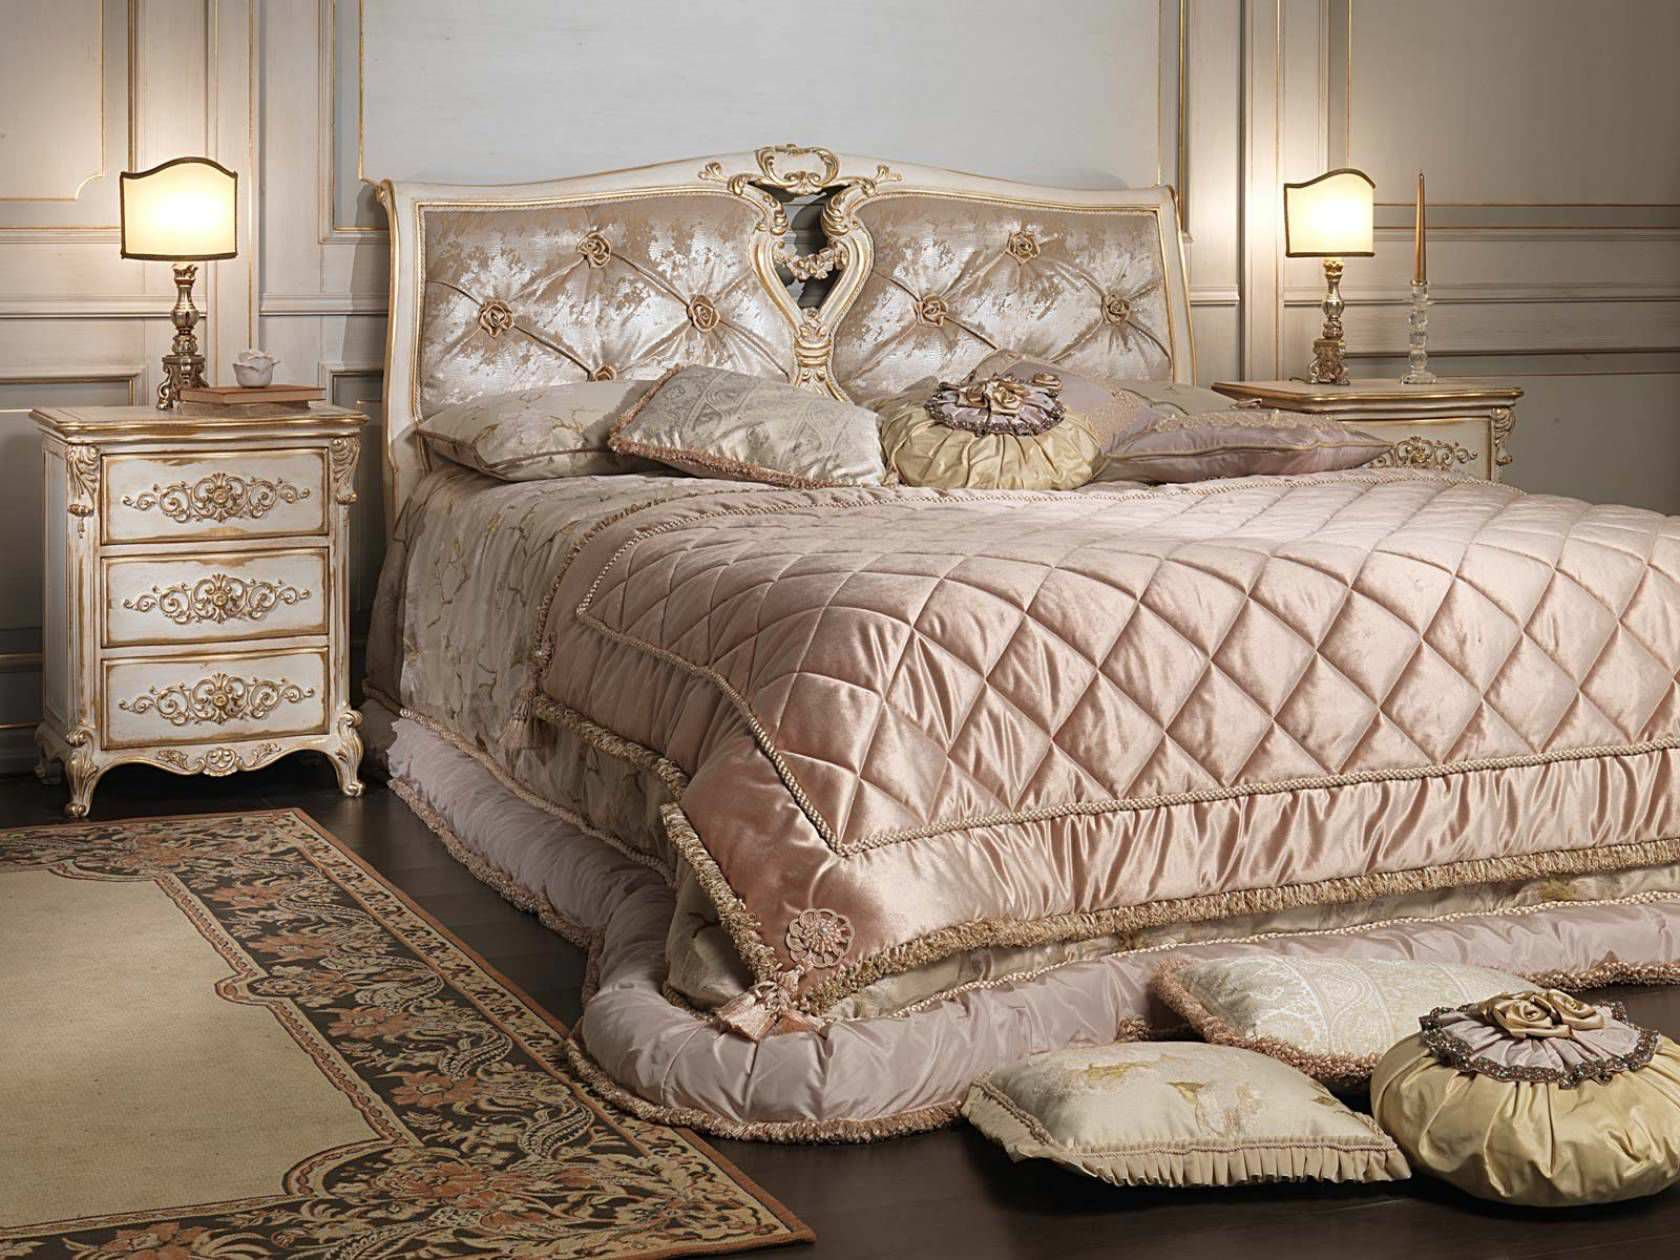 lit double / de style louis xvi / en bois - white and gold